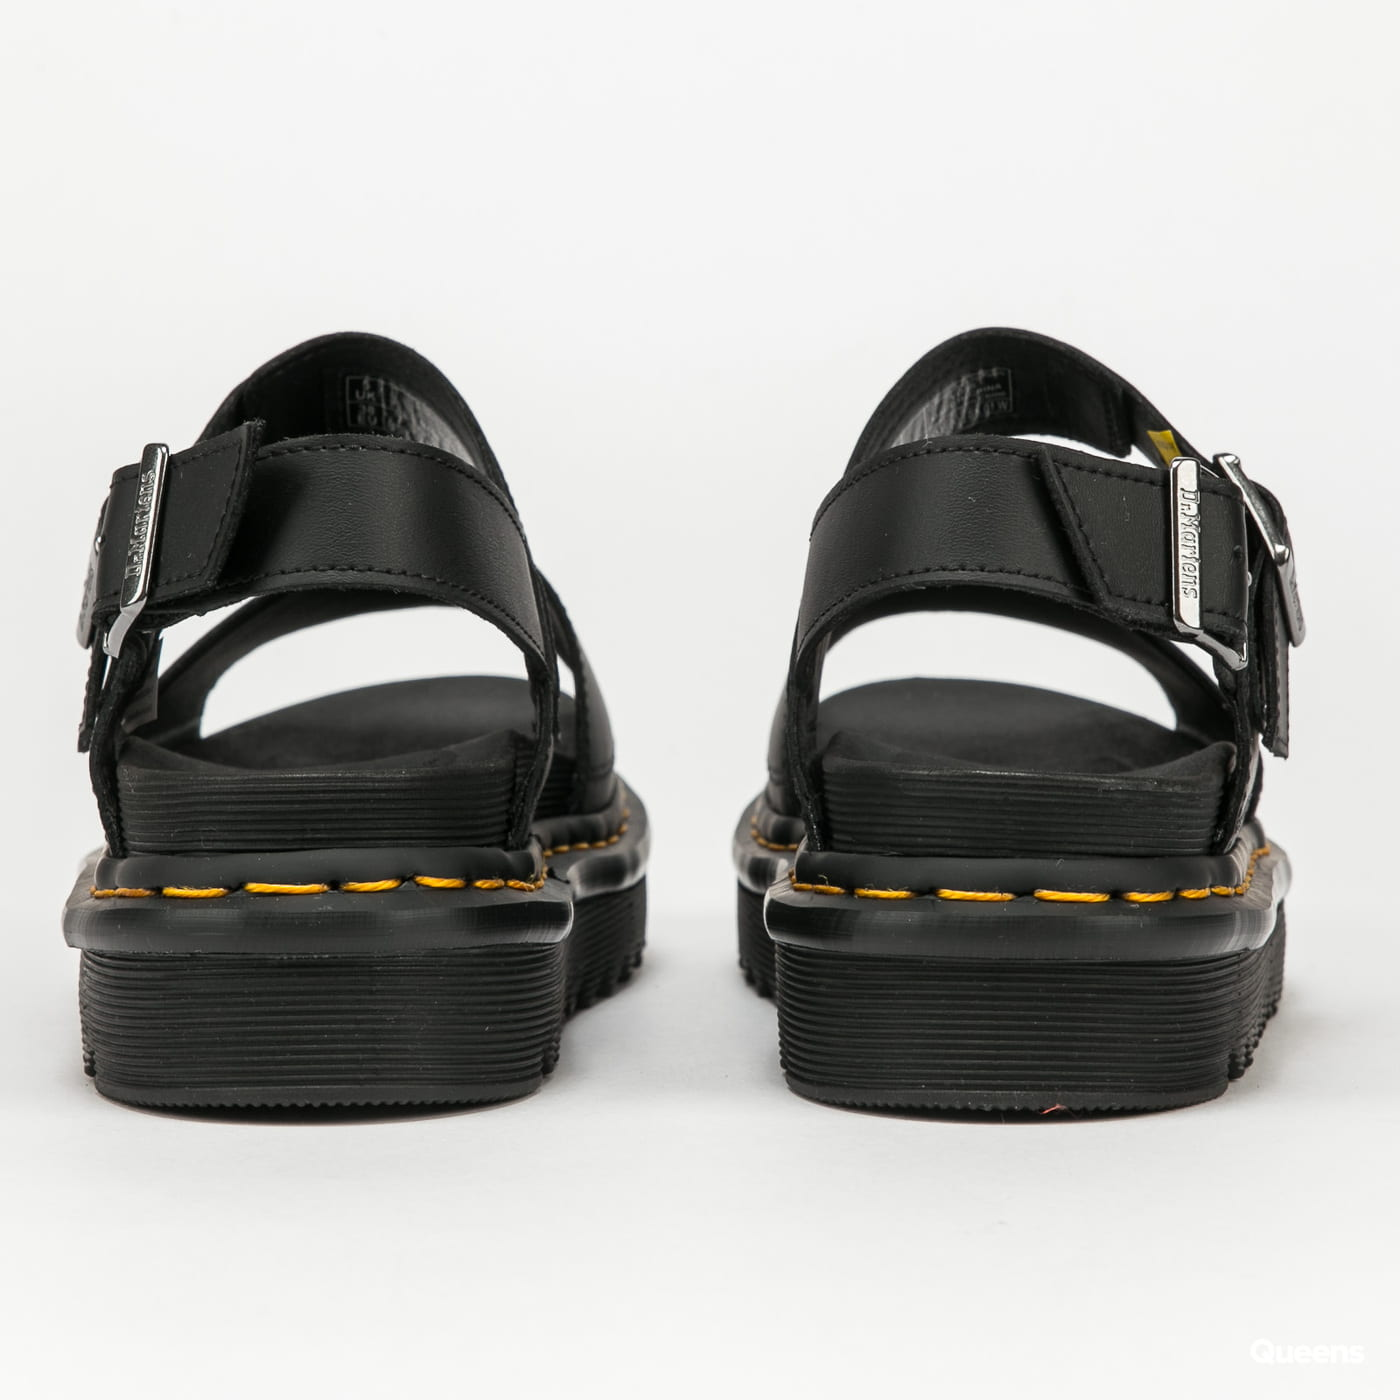 Dr. Martens Voss black hydro leather